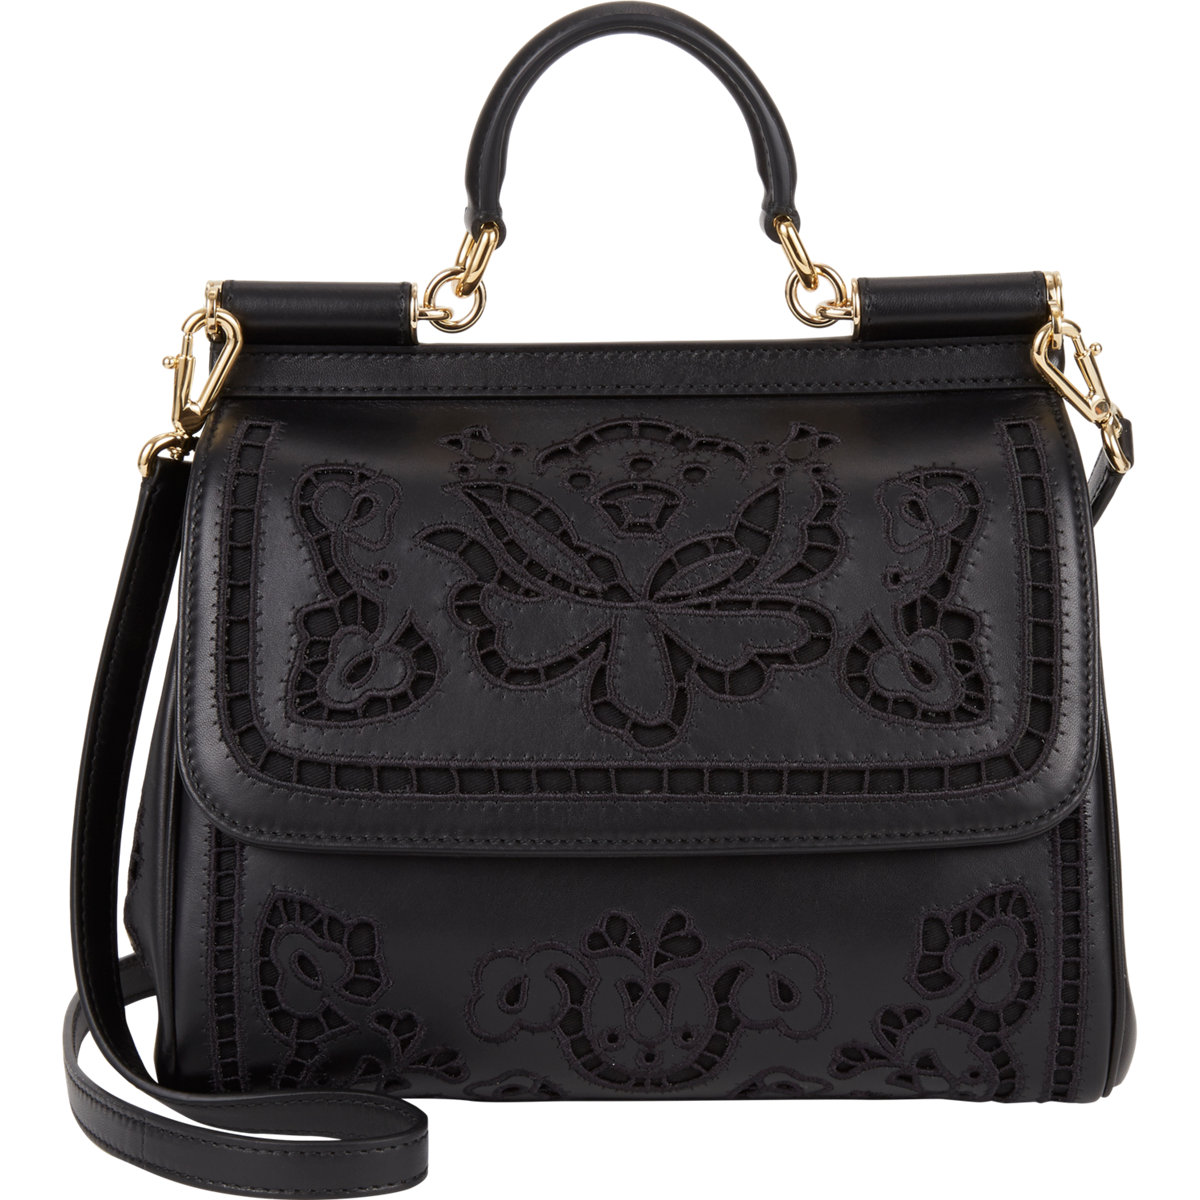 d883bb86181f Dolce   Gabbana Floral-Cutout Medium Miss Sicily Bag at Barneys.com